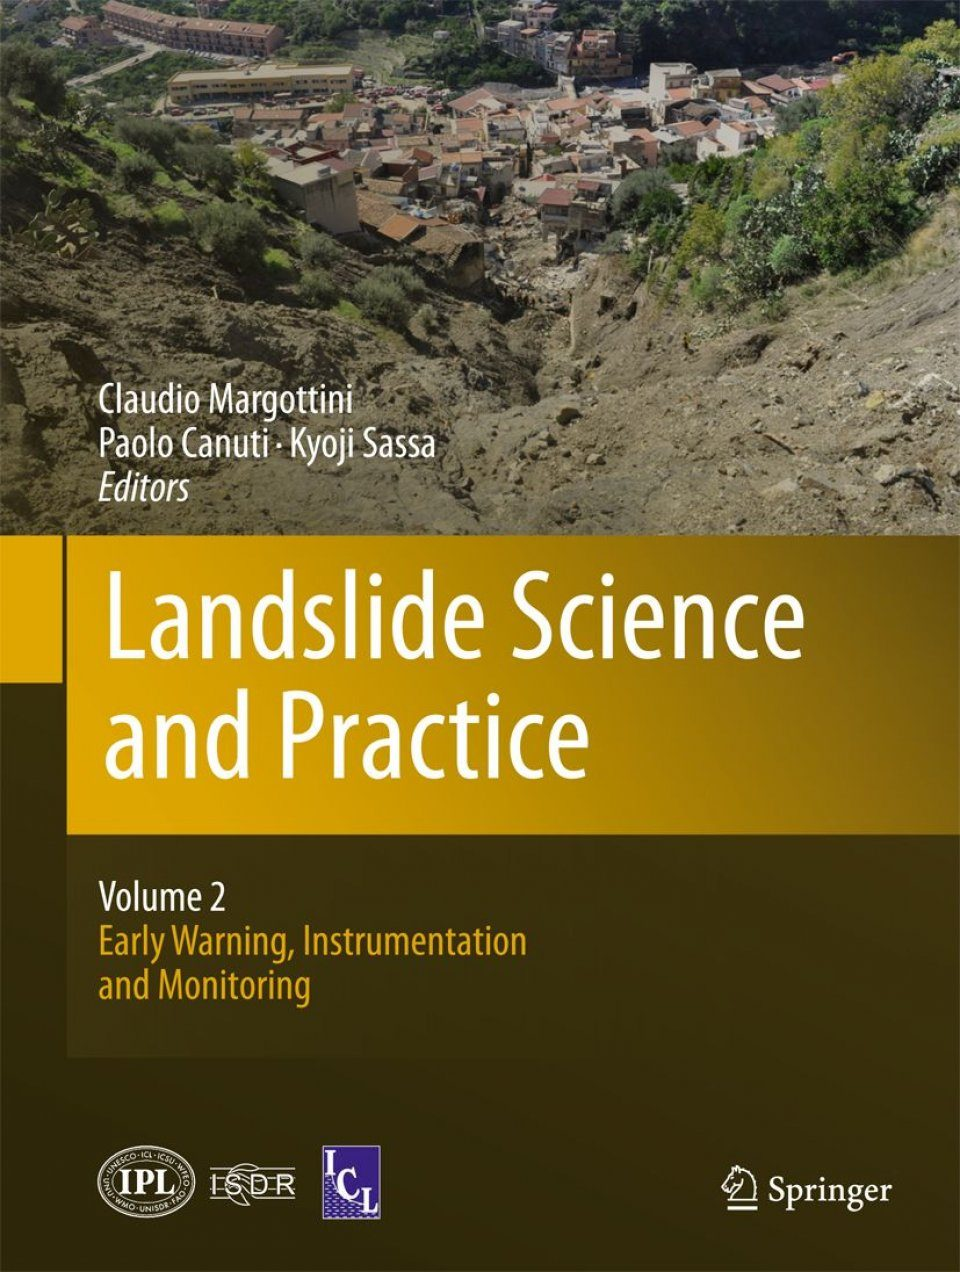 Landslide Science and Practice, Volume 2